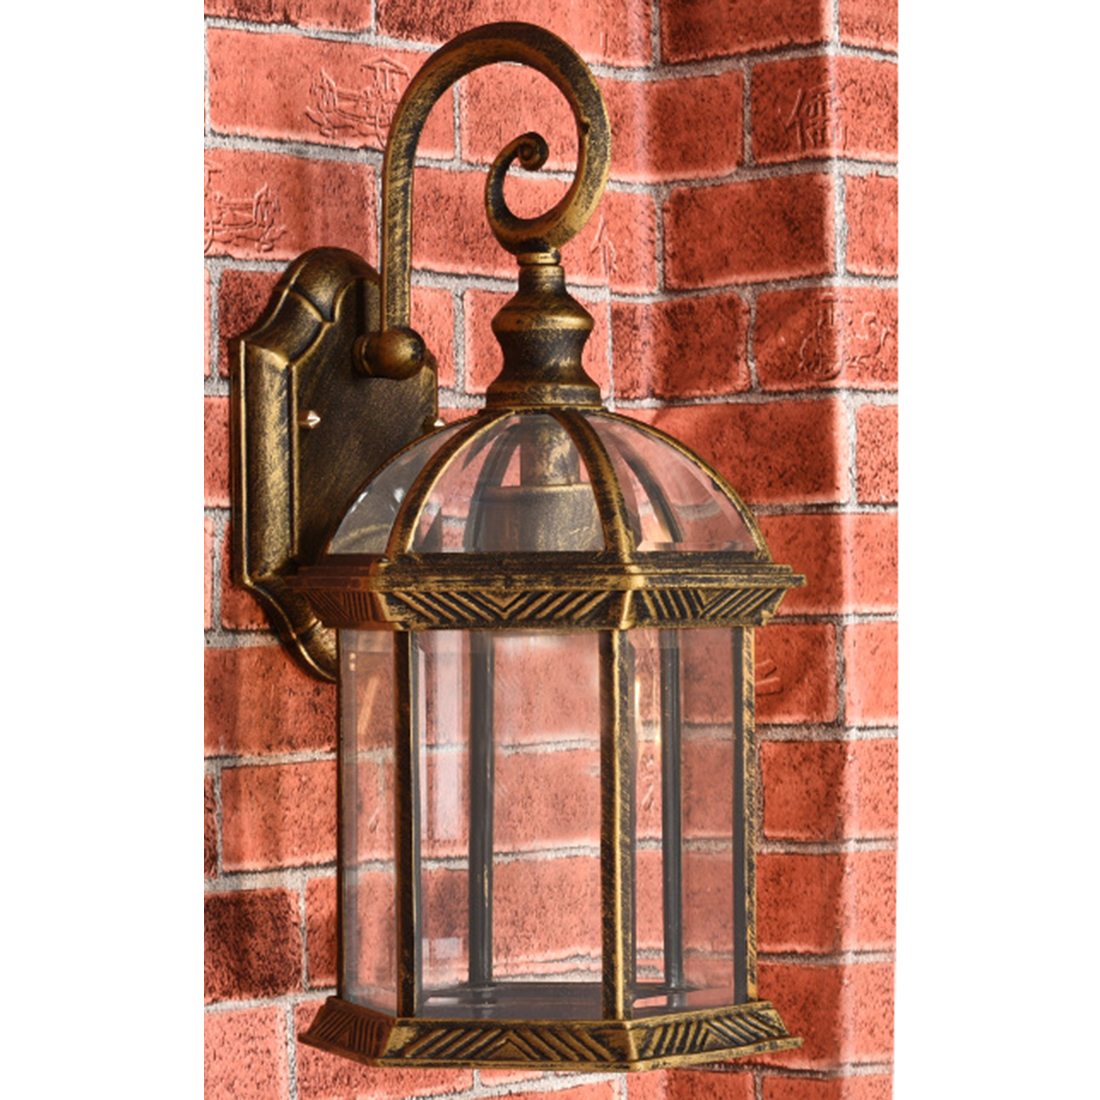 Modern Simple Wall Garden Lamps Outdoor Lighting Cover Creative Villa Garden Balcony Corridor Wall Lamp(No Light Source) S